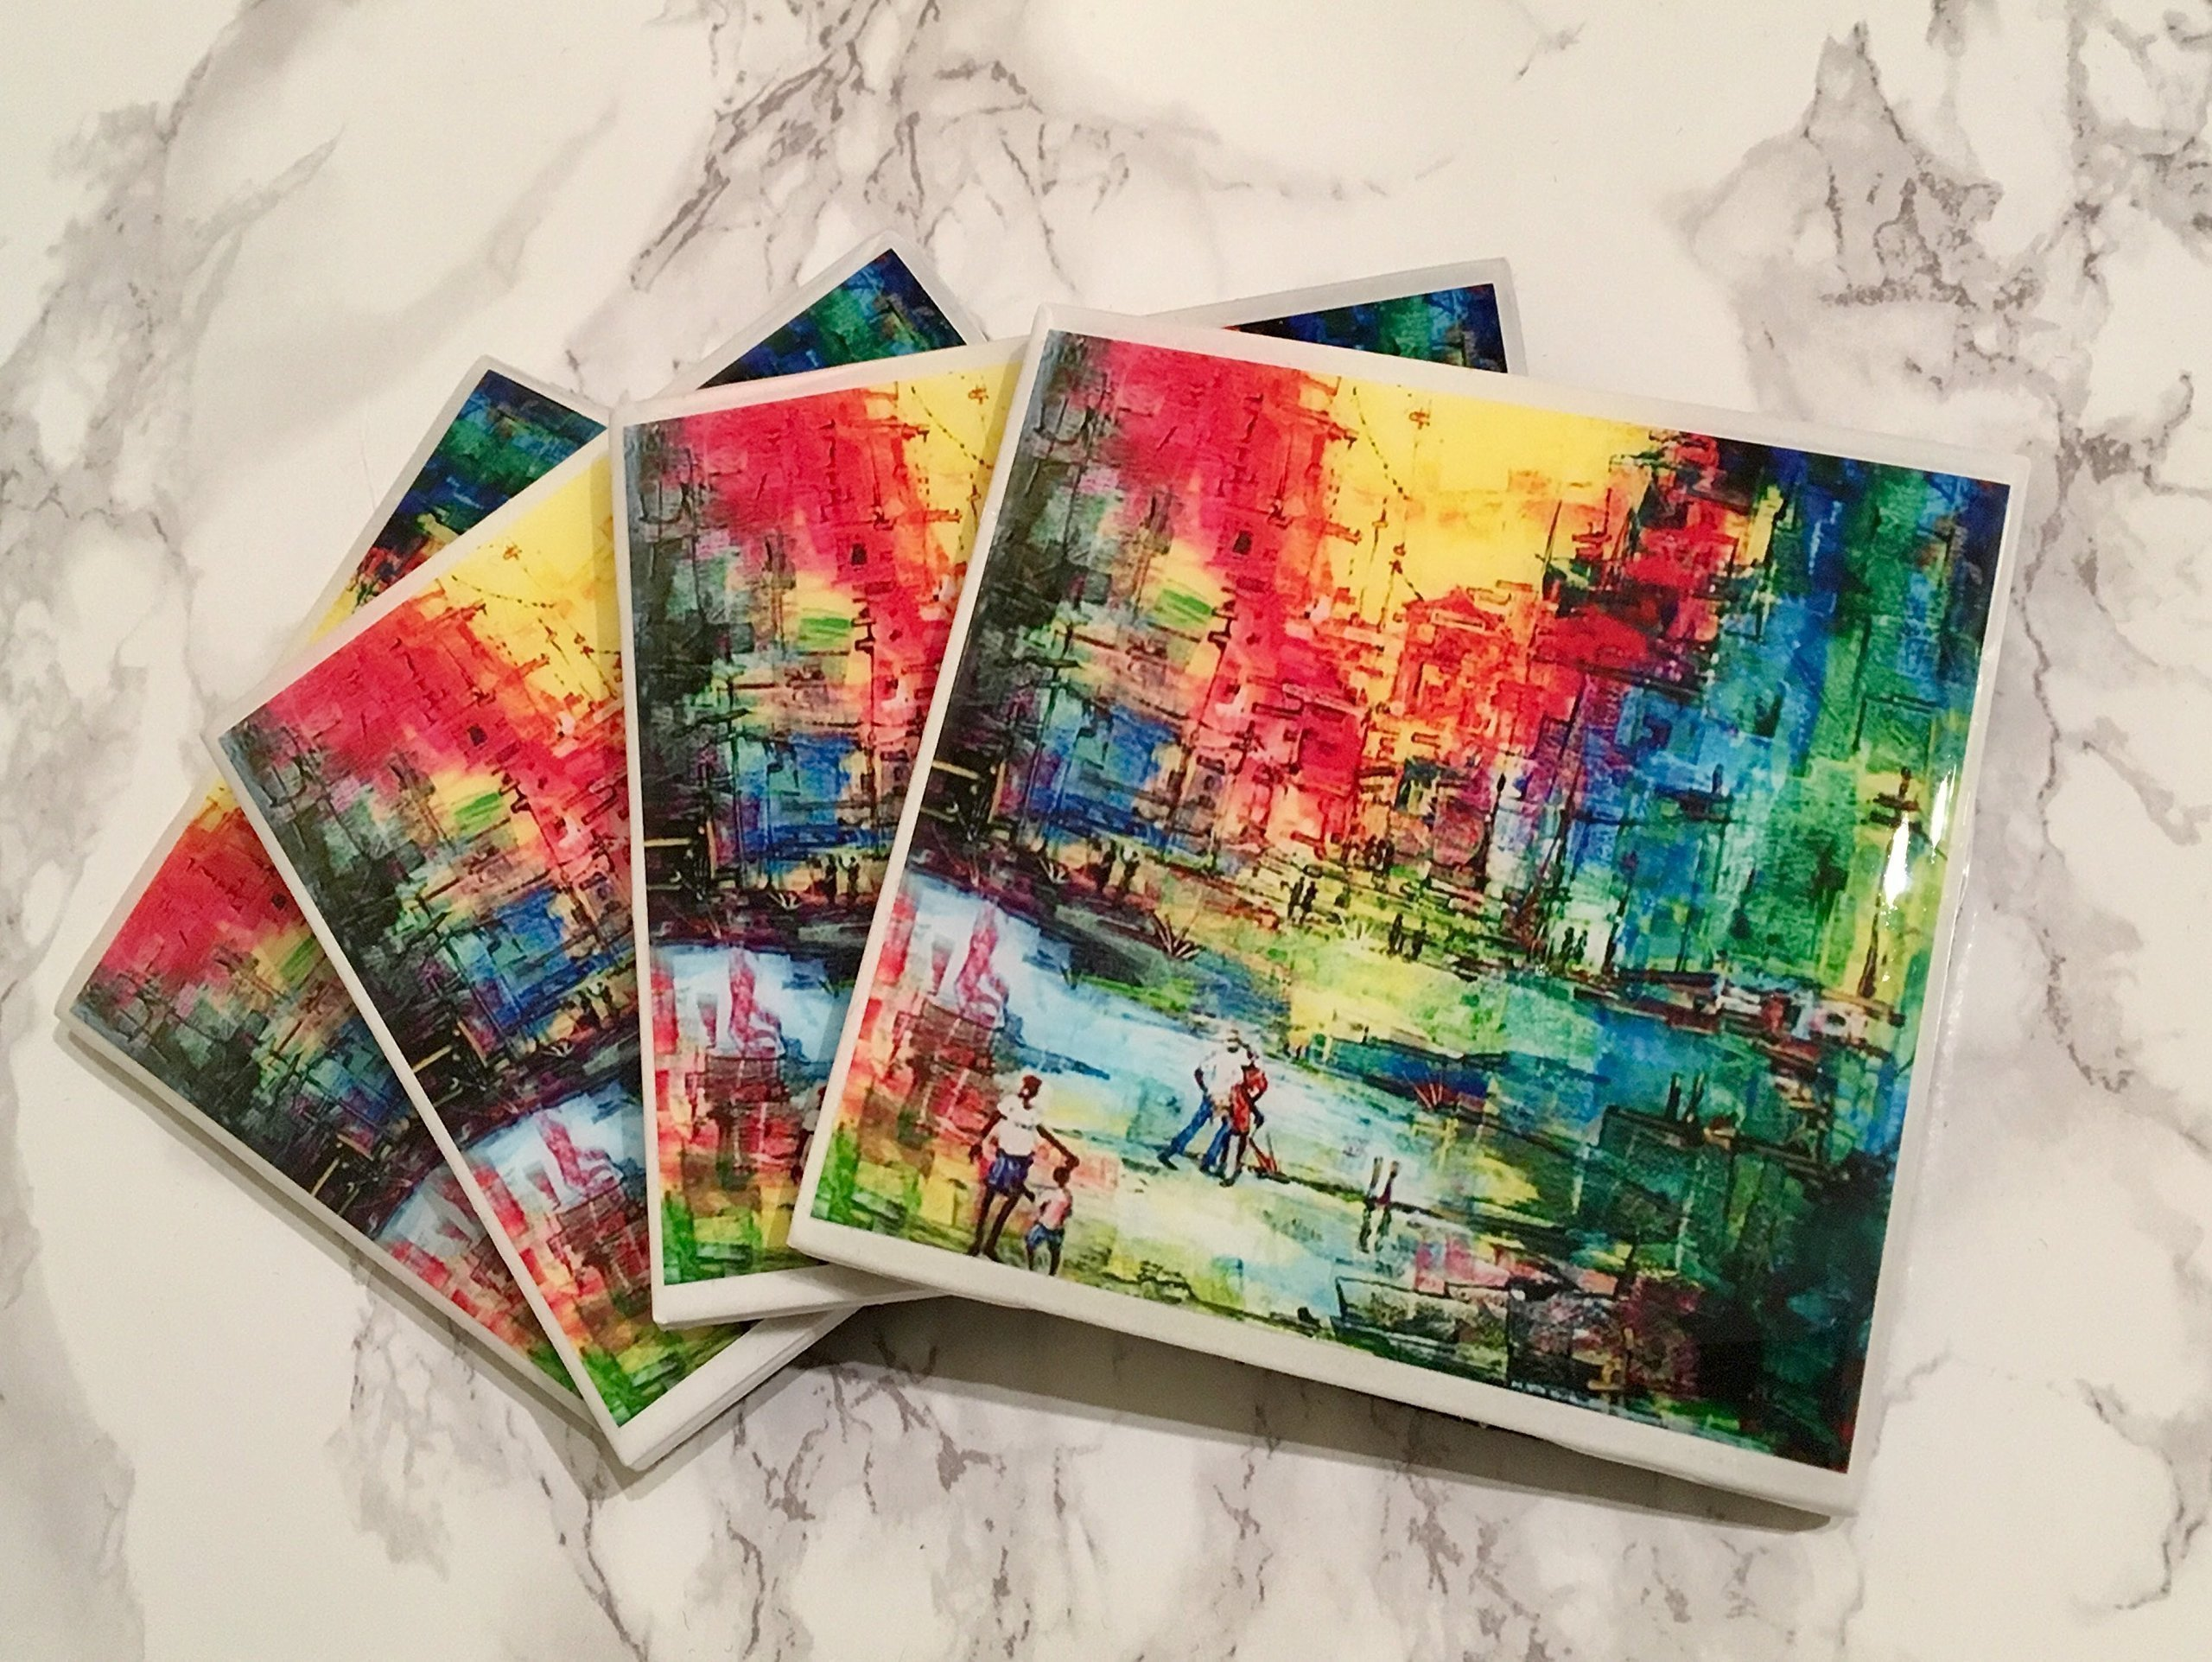 Colorful Skyline Coasters Set of 4 - Everyday Gift, Housewarming Gifts, Gift for Hostess, Birthday Gift, Coffee Tea Drinker, Wine Coasters, Gift for Coworkers